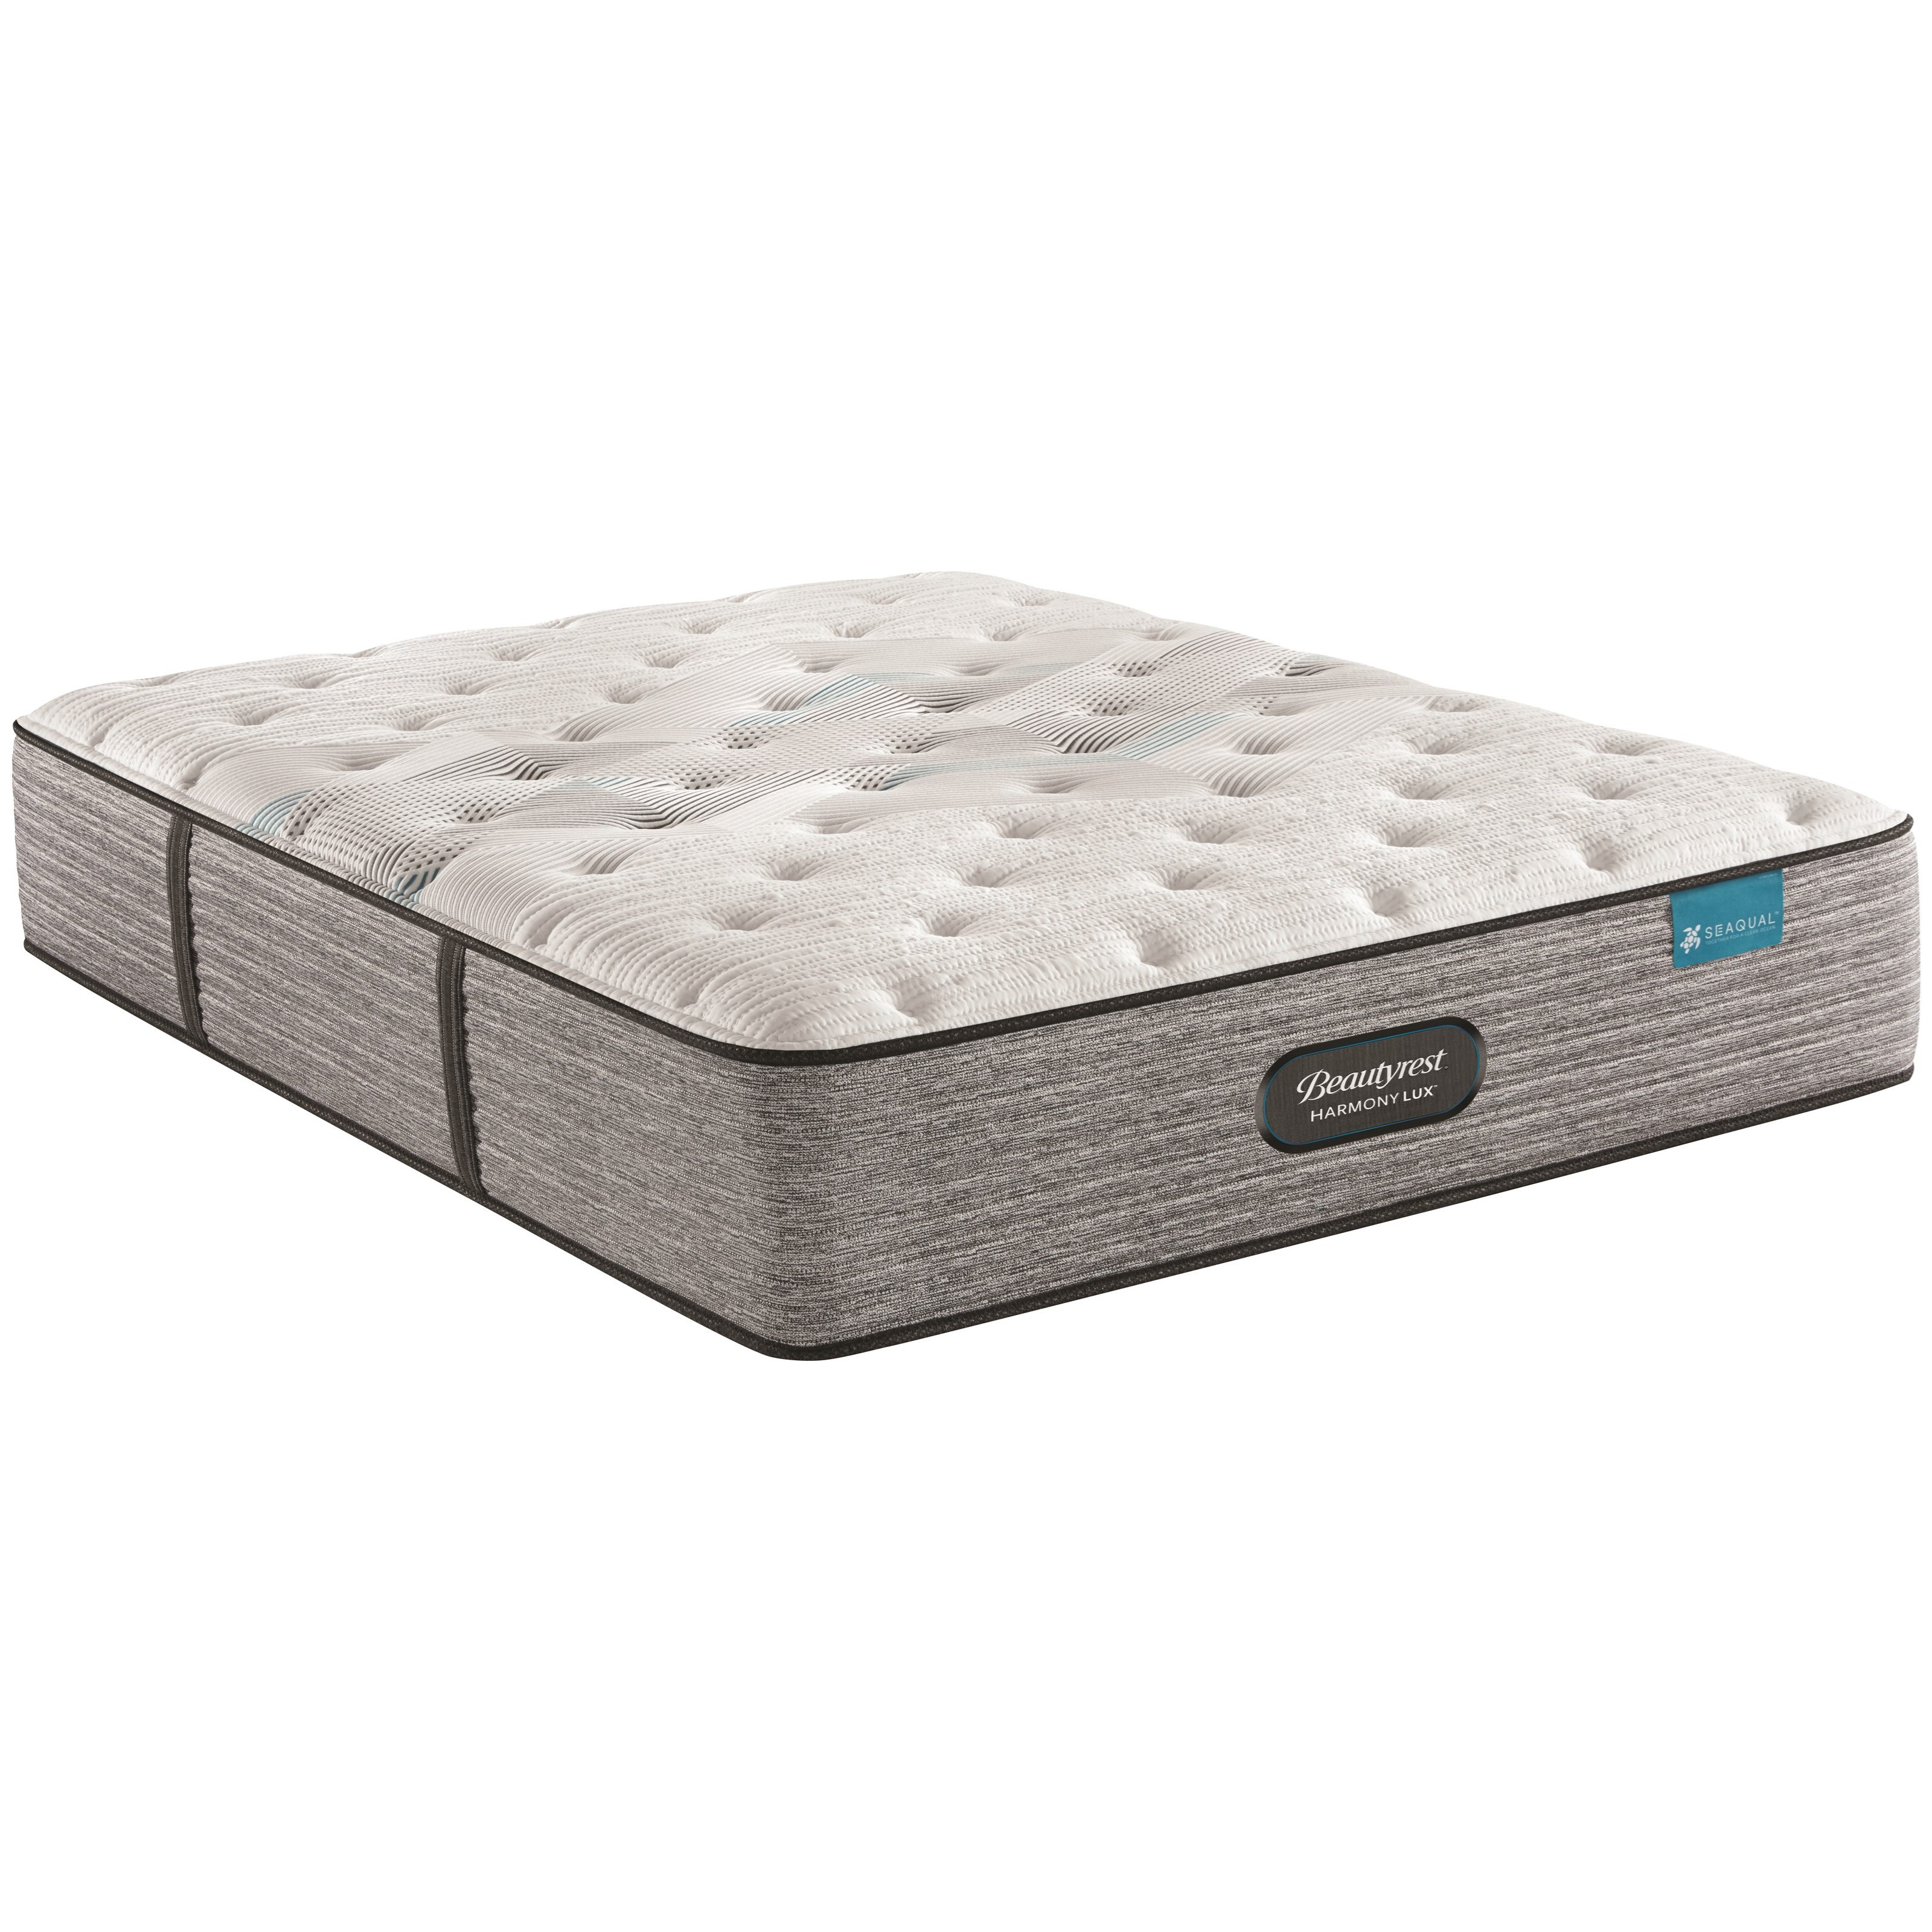 "Carbon Series Medium Queen 13 3/4"" Medium Firm Mattress by Beautyrest at Rotmans"